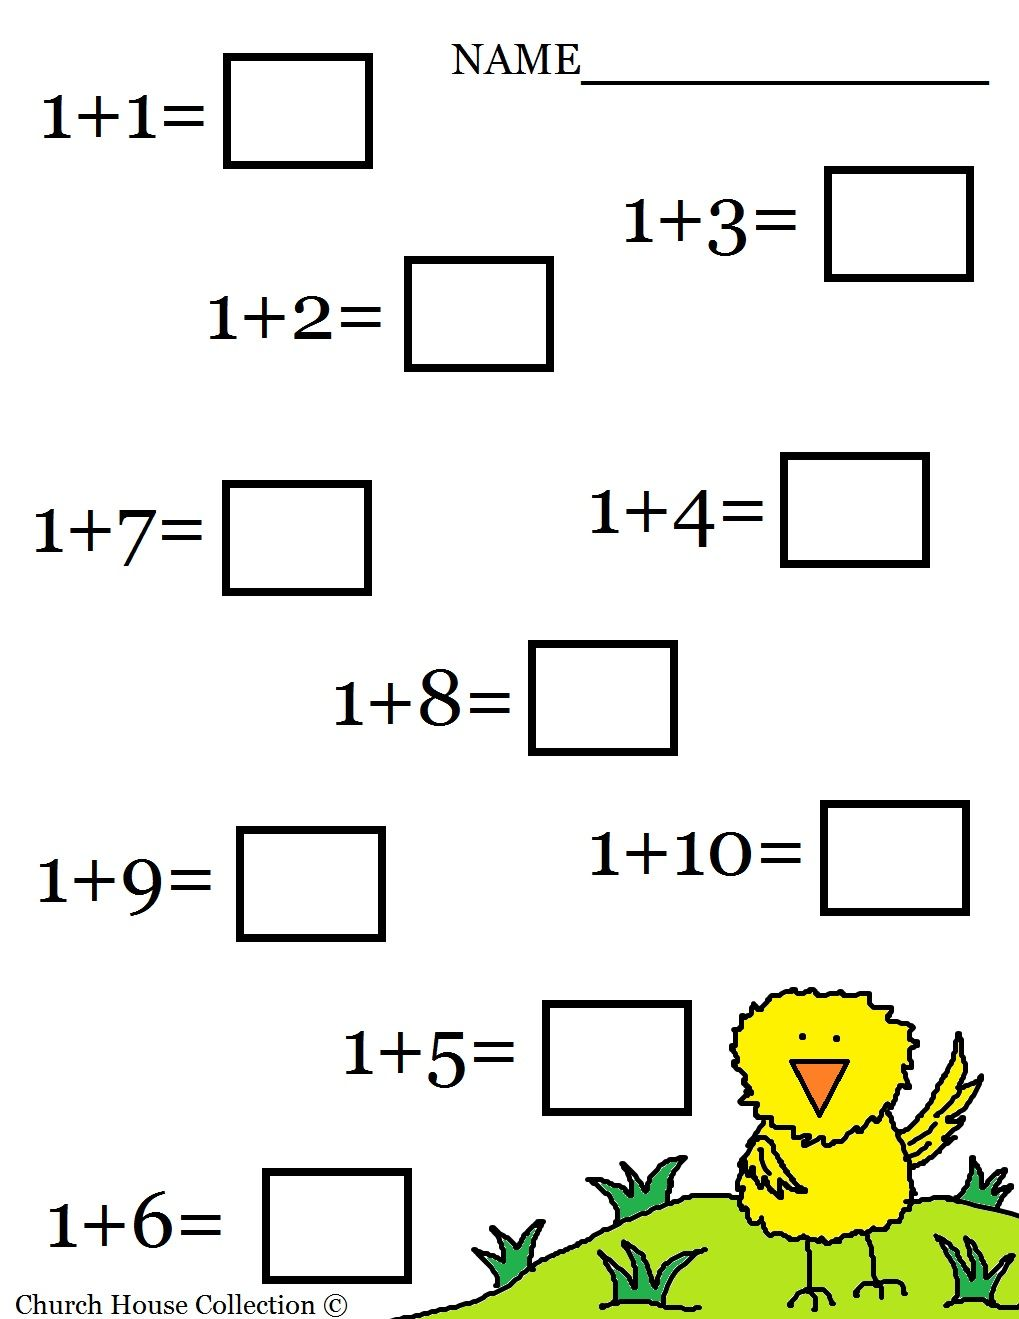 Aldiablosus  Unique  Images About Worksheets  Math On Pinterest  Math Sheets  With Outstanding  Images About Worksheets  Math On Pinterest  Math Sheets Math Worksheets For Kindergarten And Simple Addition With Extraordinary Pet Worksheets Also Conduction Worksheet In Addition Color By Addition Worksheet And Math Drill Worksheets Addition As Well As Parts Of A Book Worksheets Additionally Addition To  Worksheet From Pinterestcom With Aldiablosus  Outstanding  Images About Worksheets  Math On Pinterest  Math Sheets  With Extraordinary  Images About Worksheets  Math On Pinterest  Math Sheets Math Worksheets For Kindergarten And Simple Addition And Unique Pet Worksheets Also Conduction Worksheet In Addition Color By Addition Worksheet From Pinterestcom